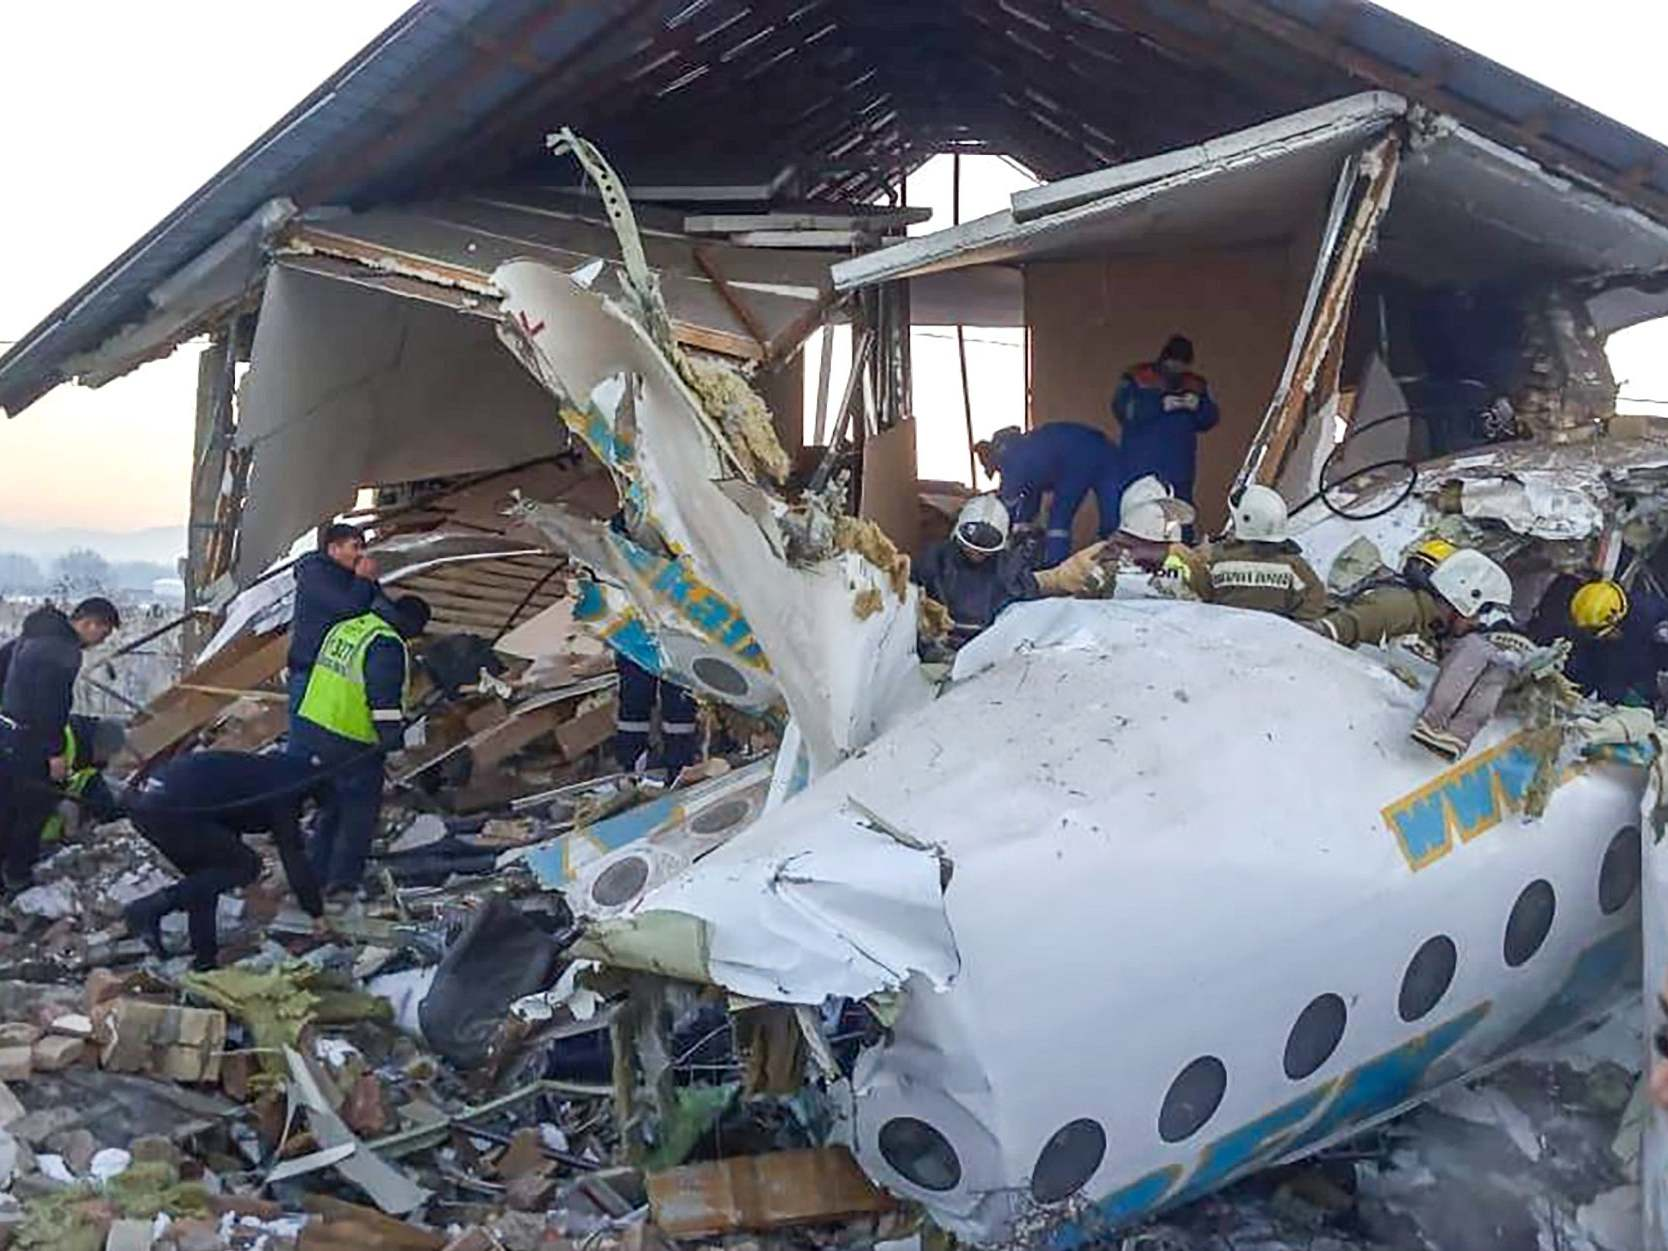 Kazakh Airplane Crashes Into Building Just After Takeoff in Almaty